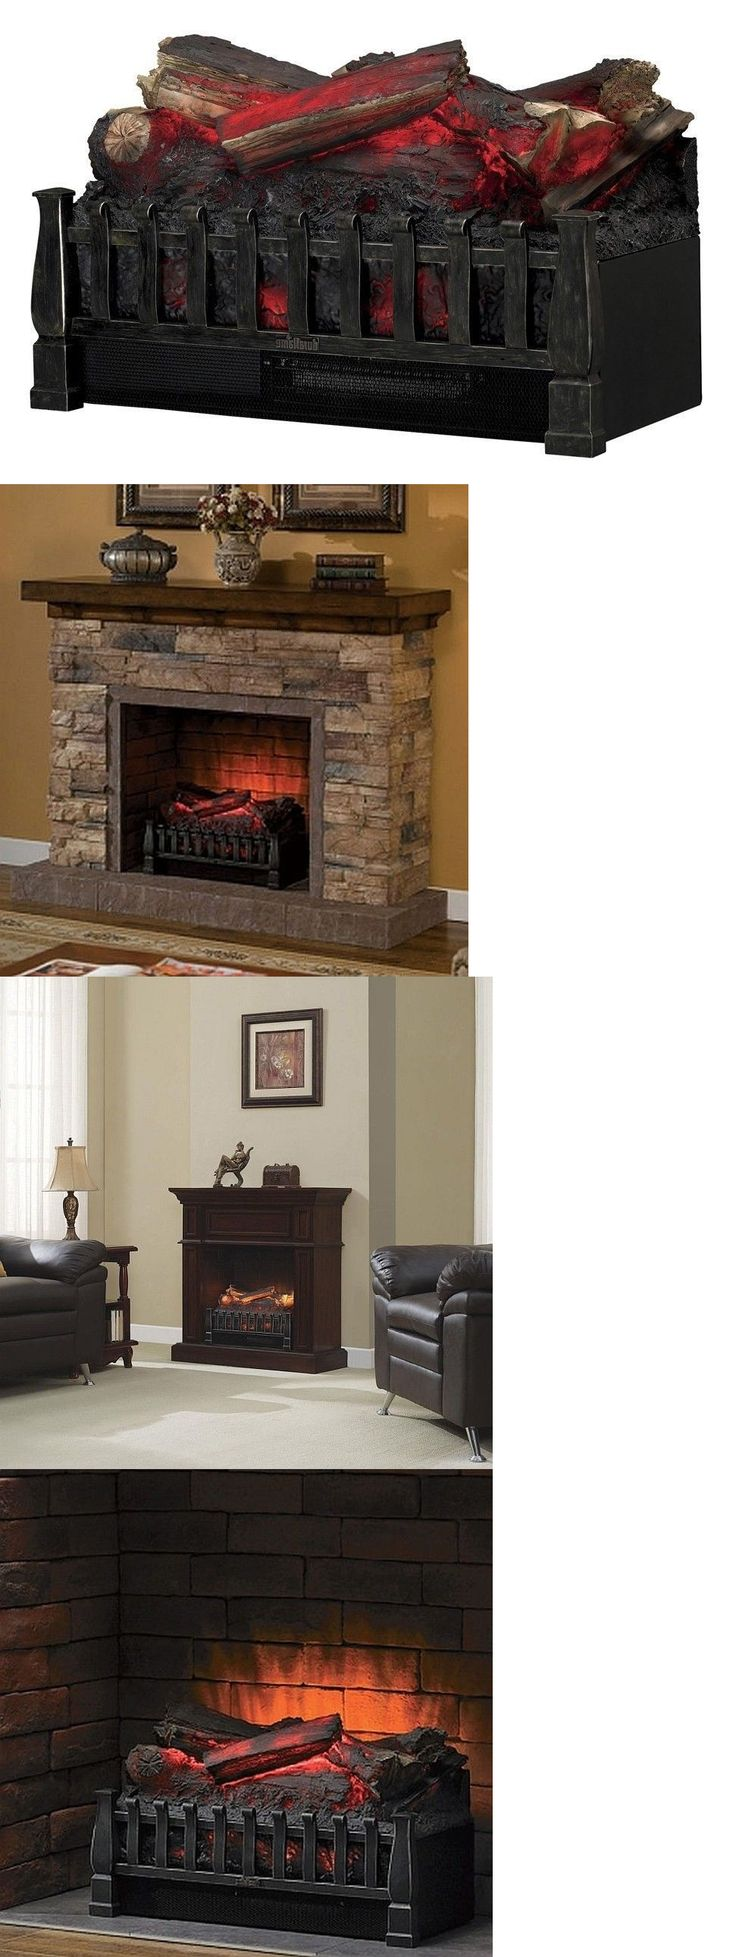 Inserts fireplace accessories new york by bowden s fireside - Fireplaces 175756 Electric Fireplace Insert Duraflame Heater Logs Remote Decor Wood Ventless Led